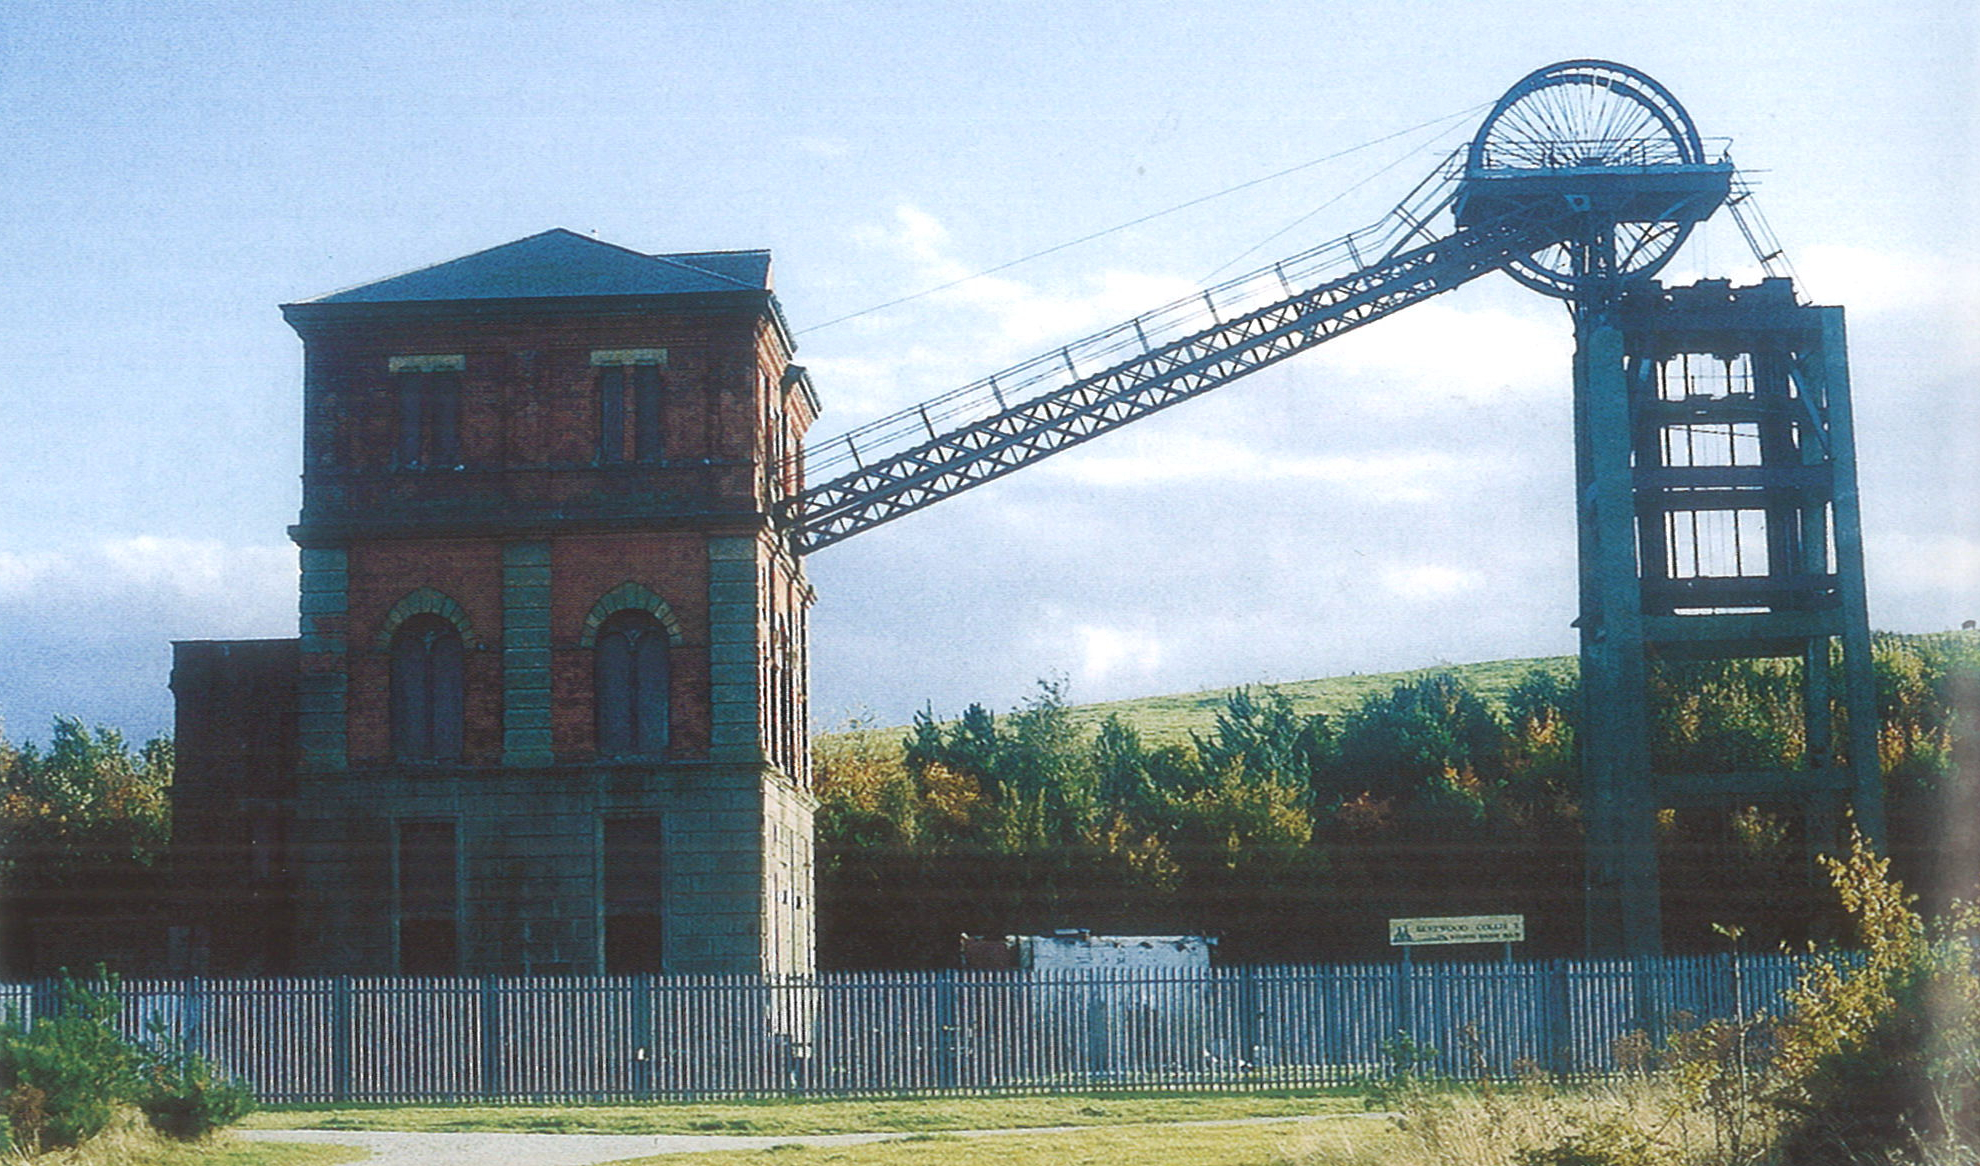 A photograph showing a brick tower on the left and a metal one on the right. The two are connected by a metal structure, and a large wheel can be seen at the top of the right-hand tower. The whole structure is surrounded by a metal fence.